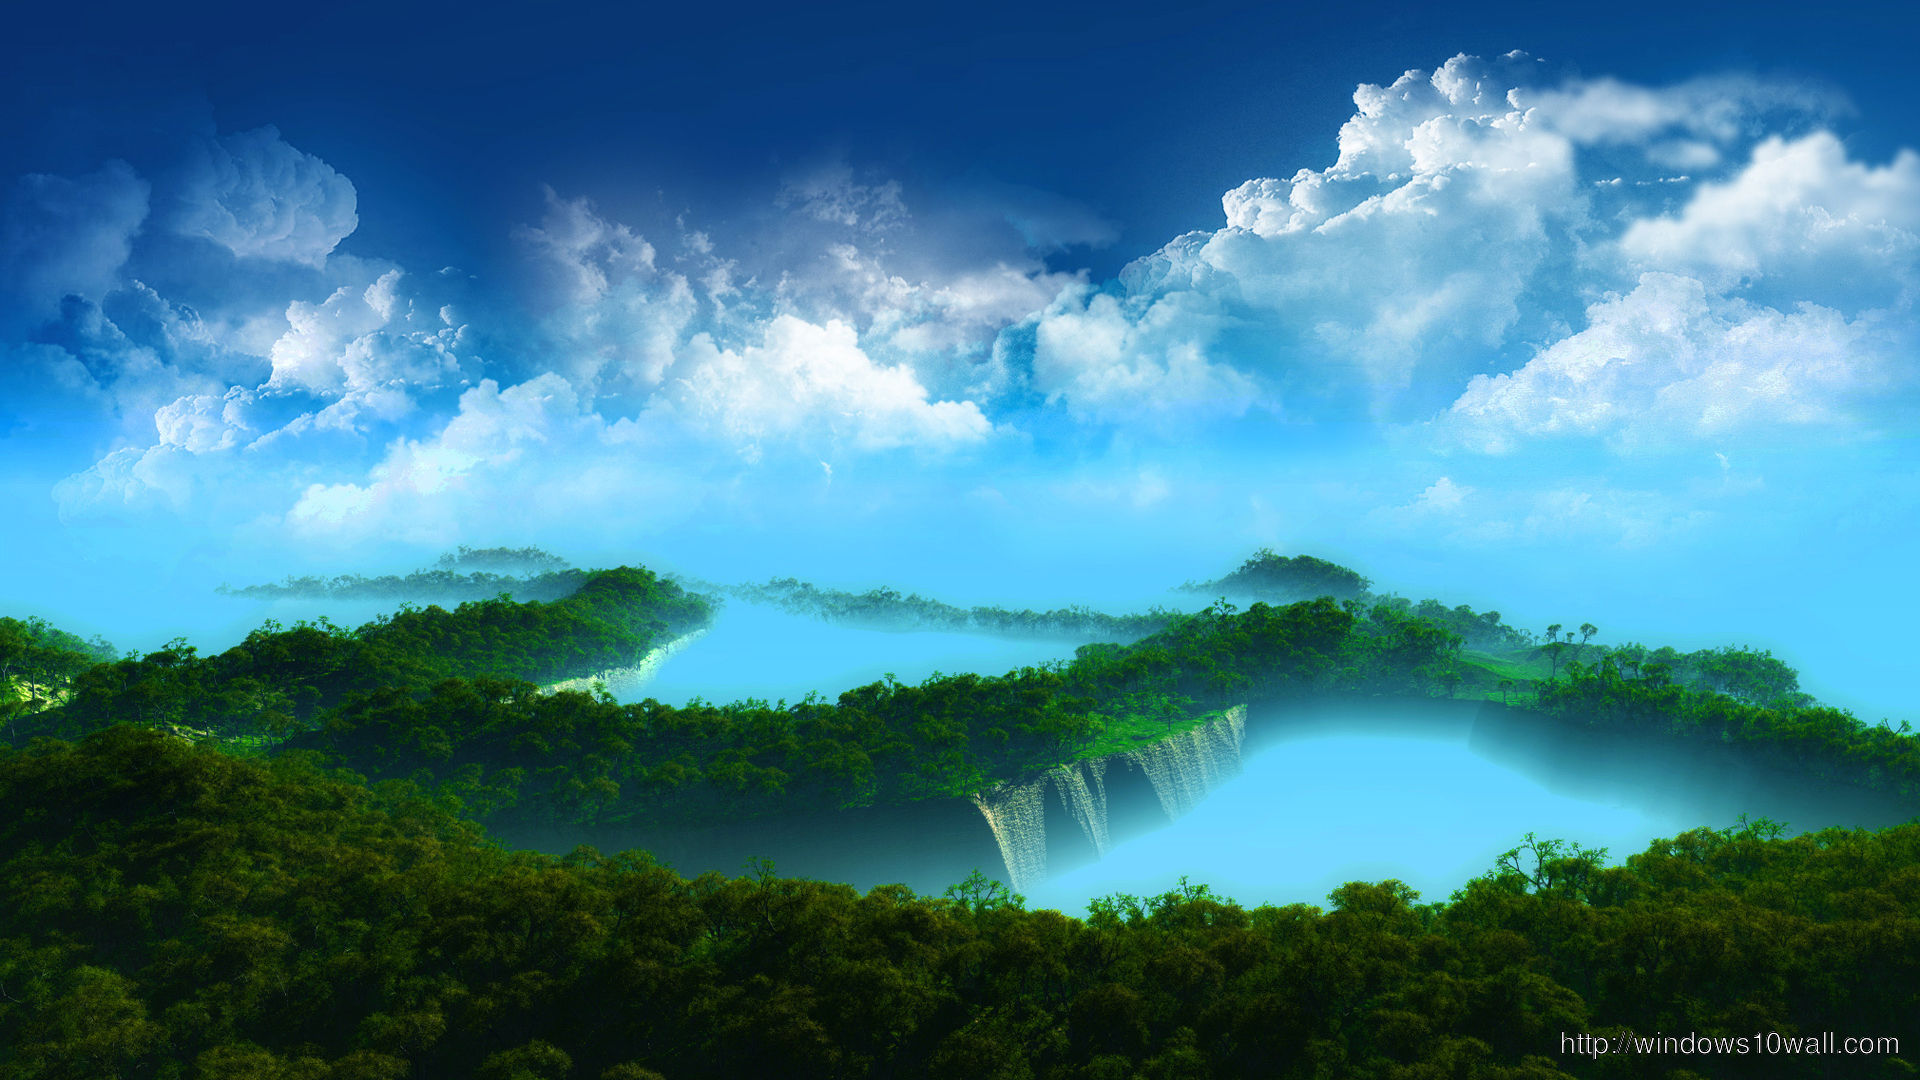 Superb Cloudy Nature wallpaper hd 1080p